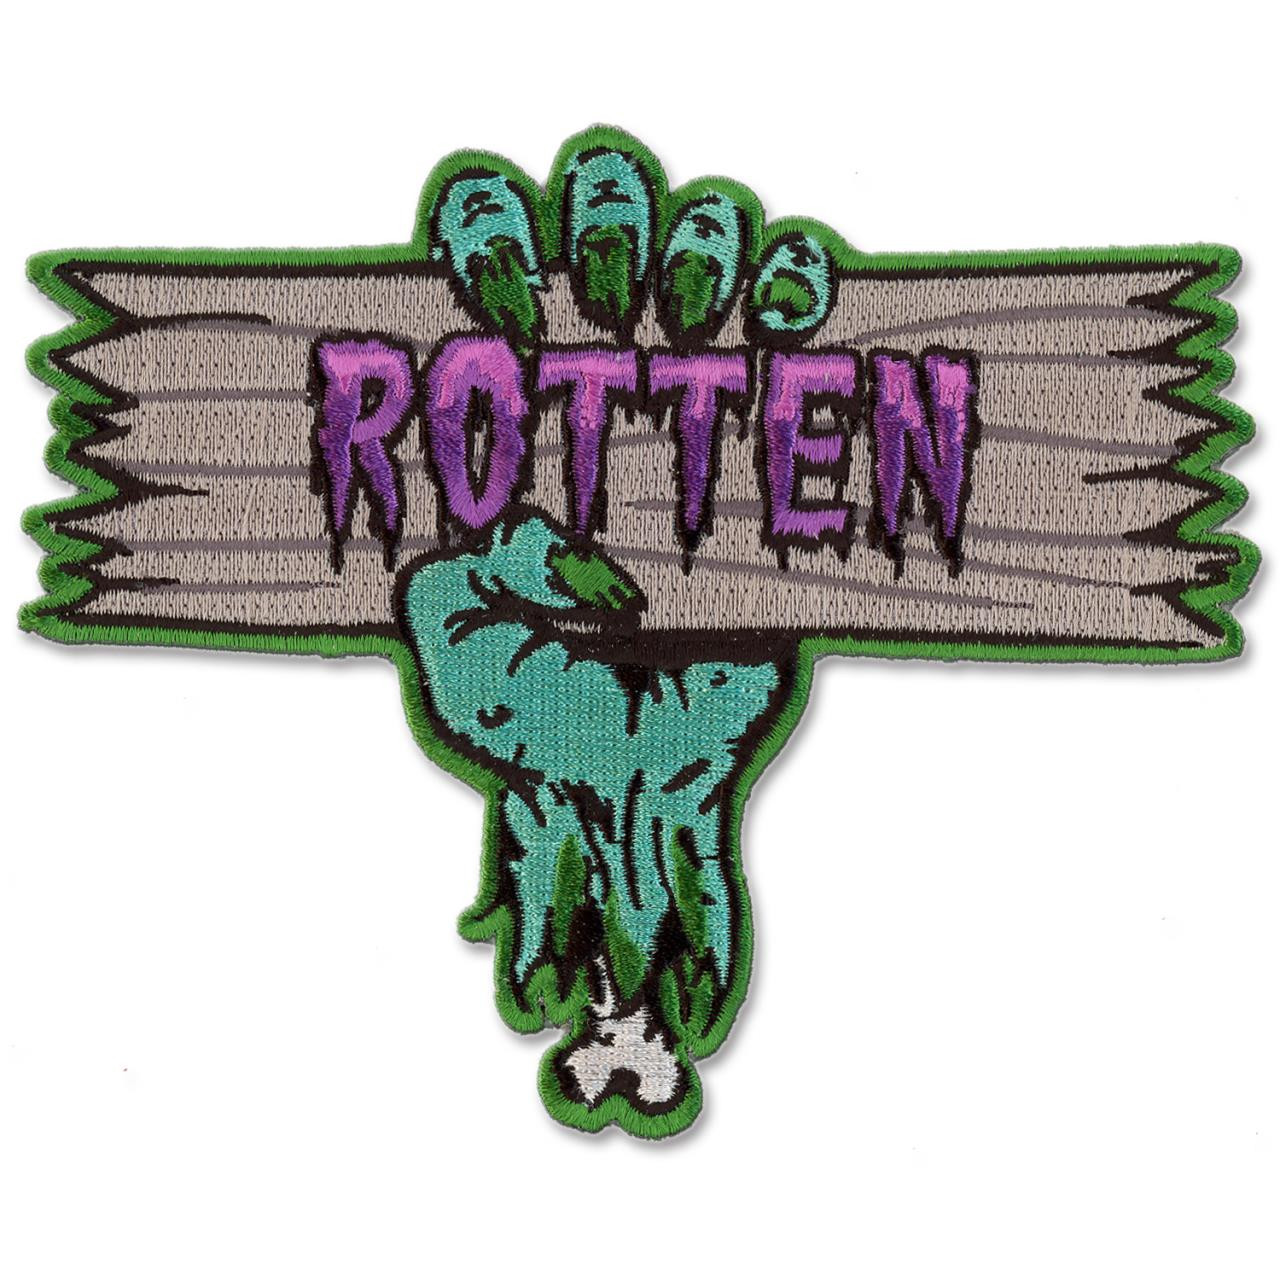 Rotten Patch - 0659682807904